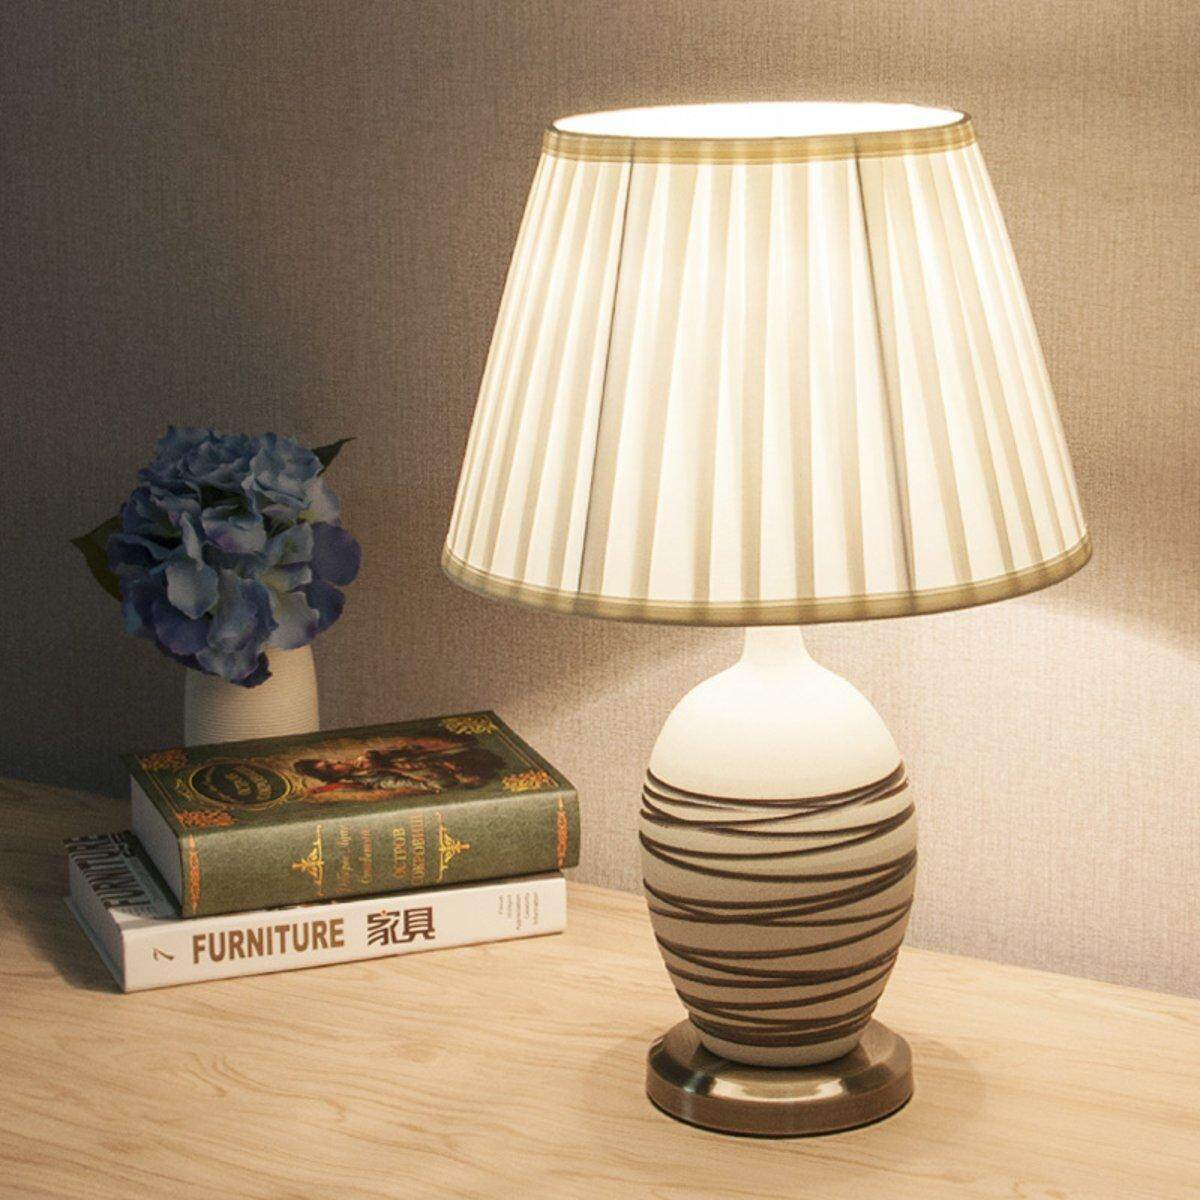 6 To 20 Fabric Box Pleat Lamp Shade Table Light Lampshade Mink Cream Ivory 400mm By Moonbeam.